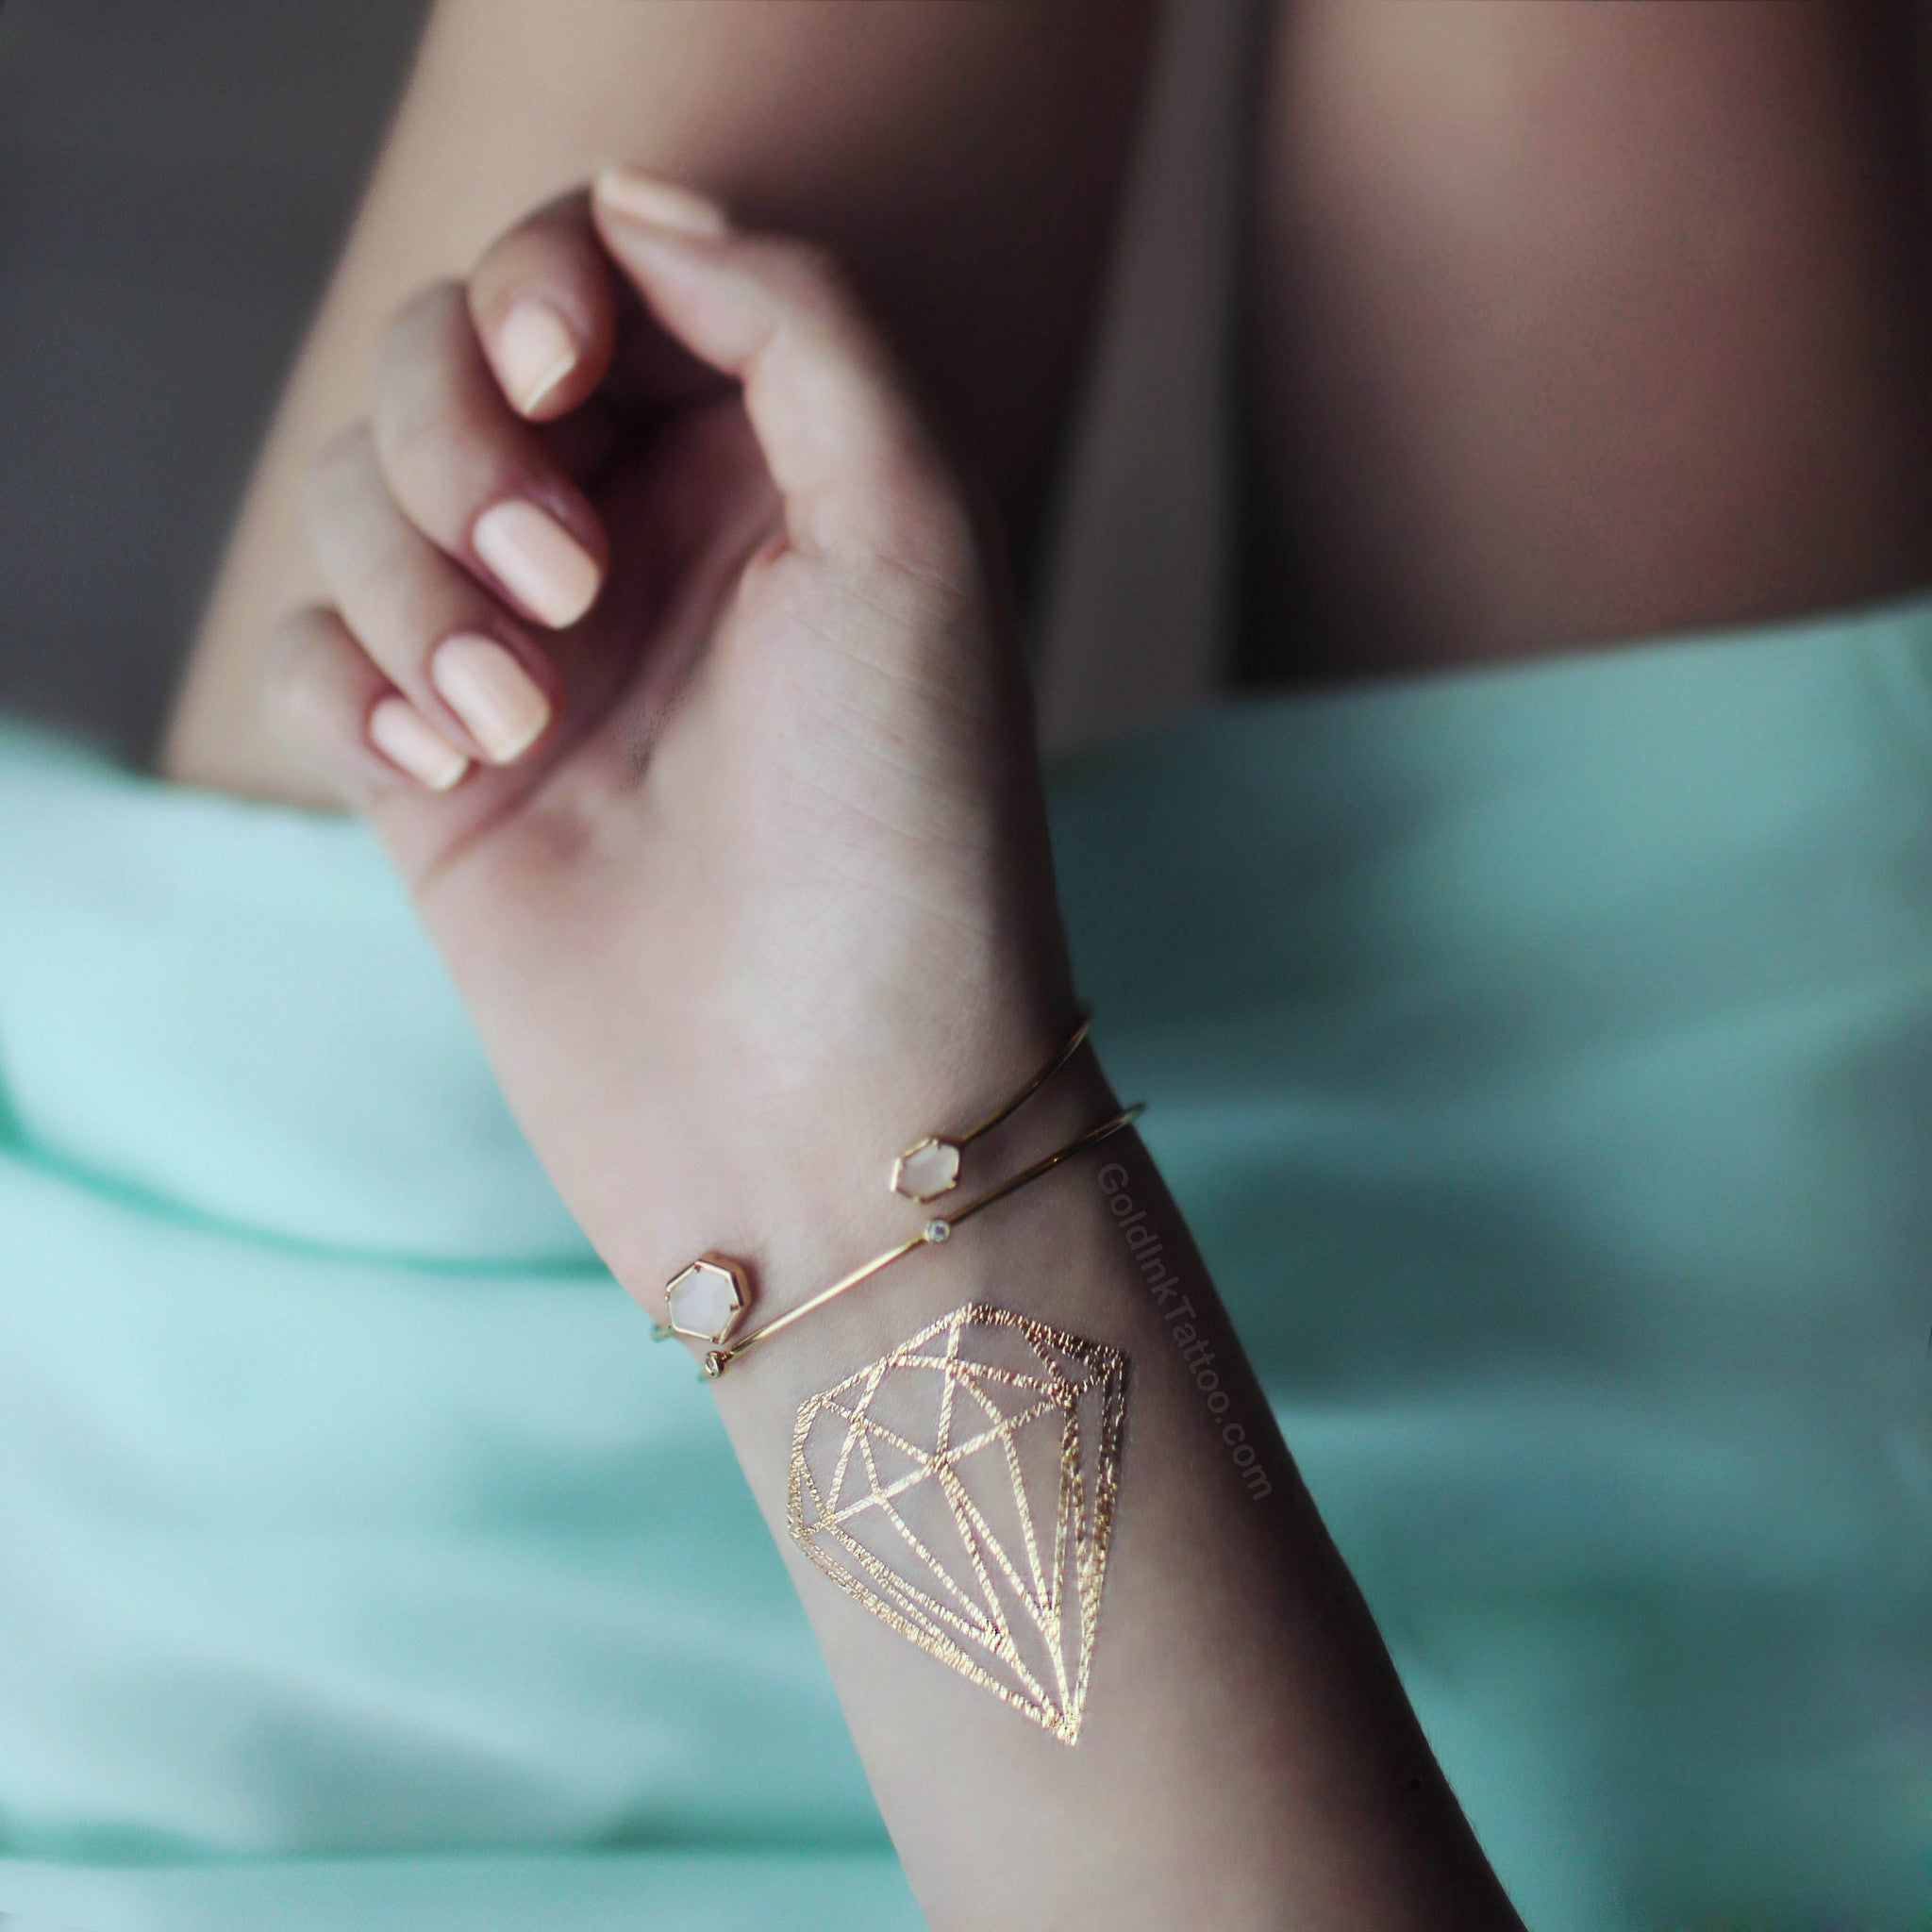 Gold Diamond Flash Metallic Tattoo for Bride | Gold Ink Tattoo